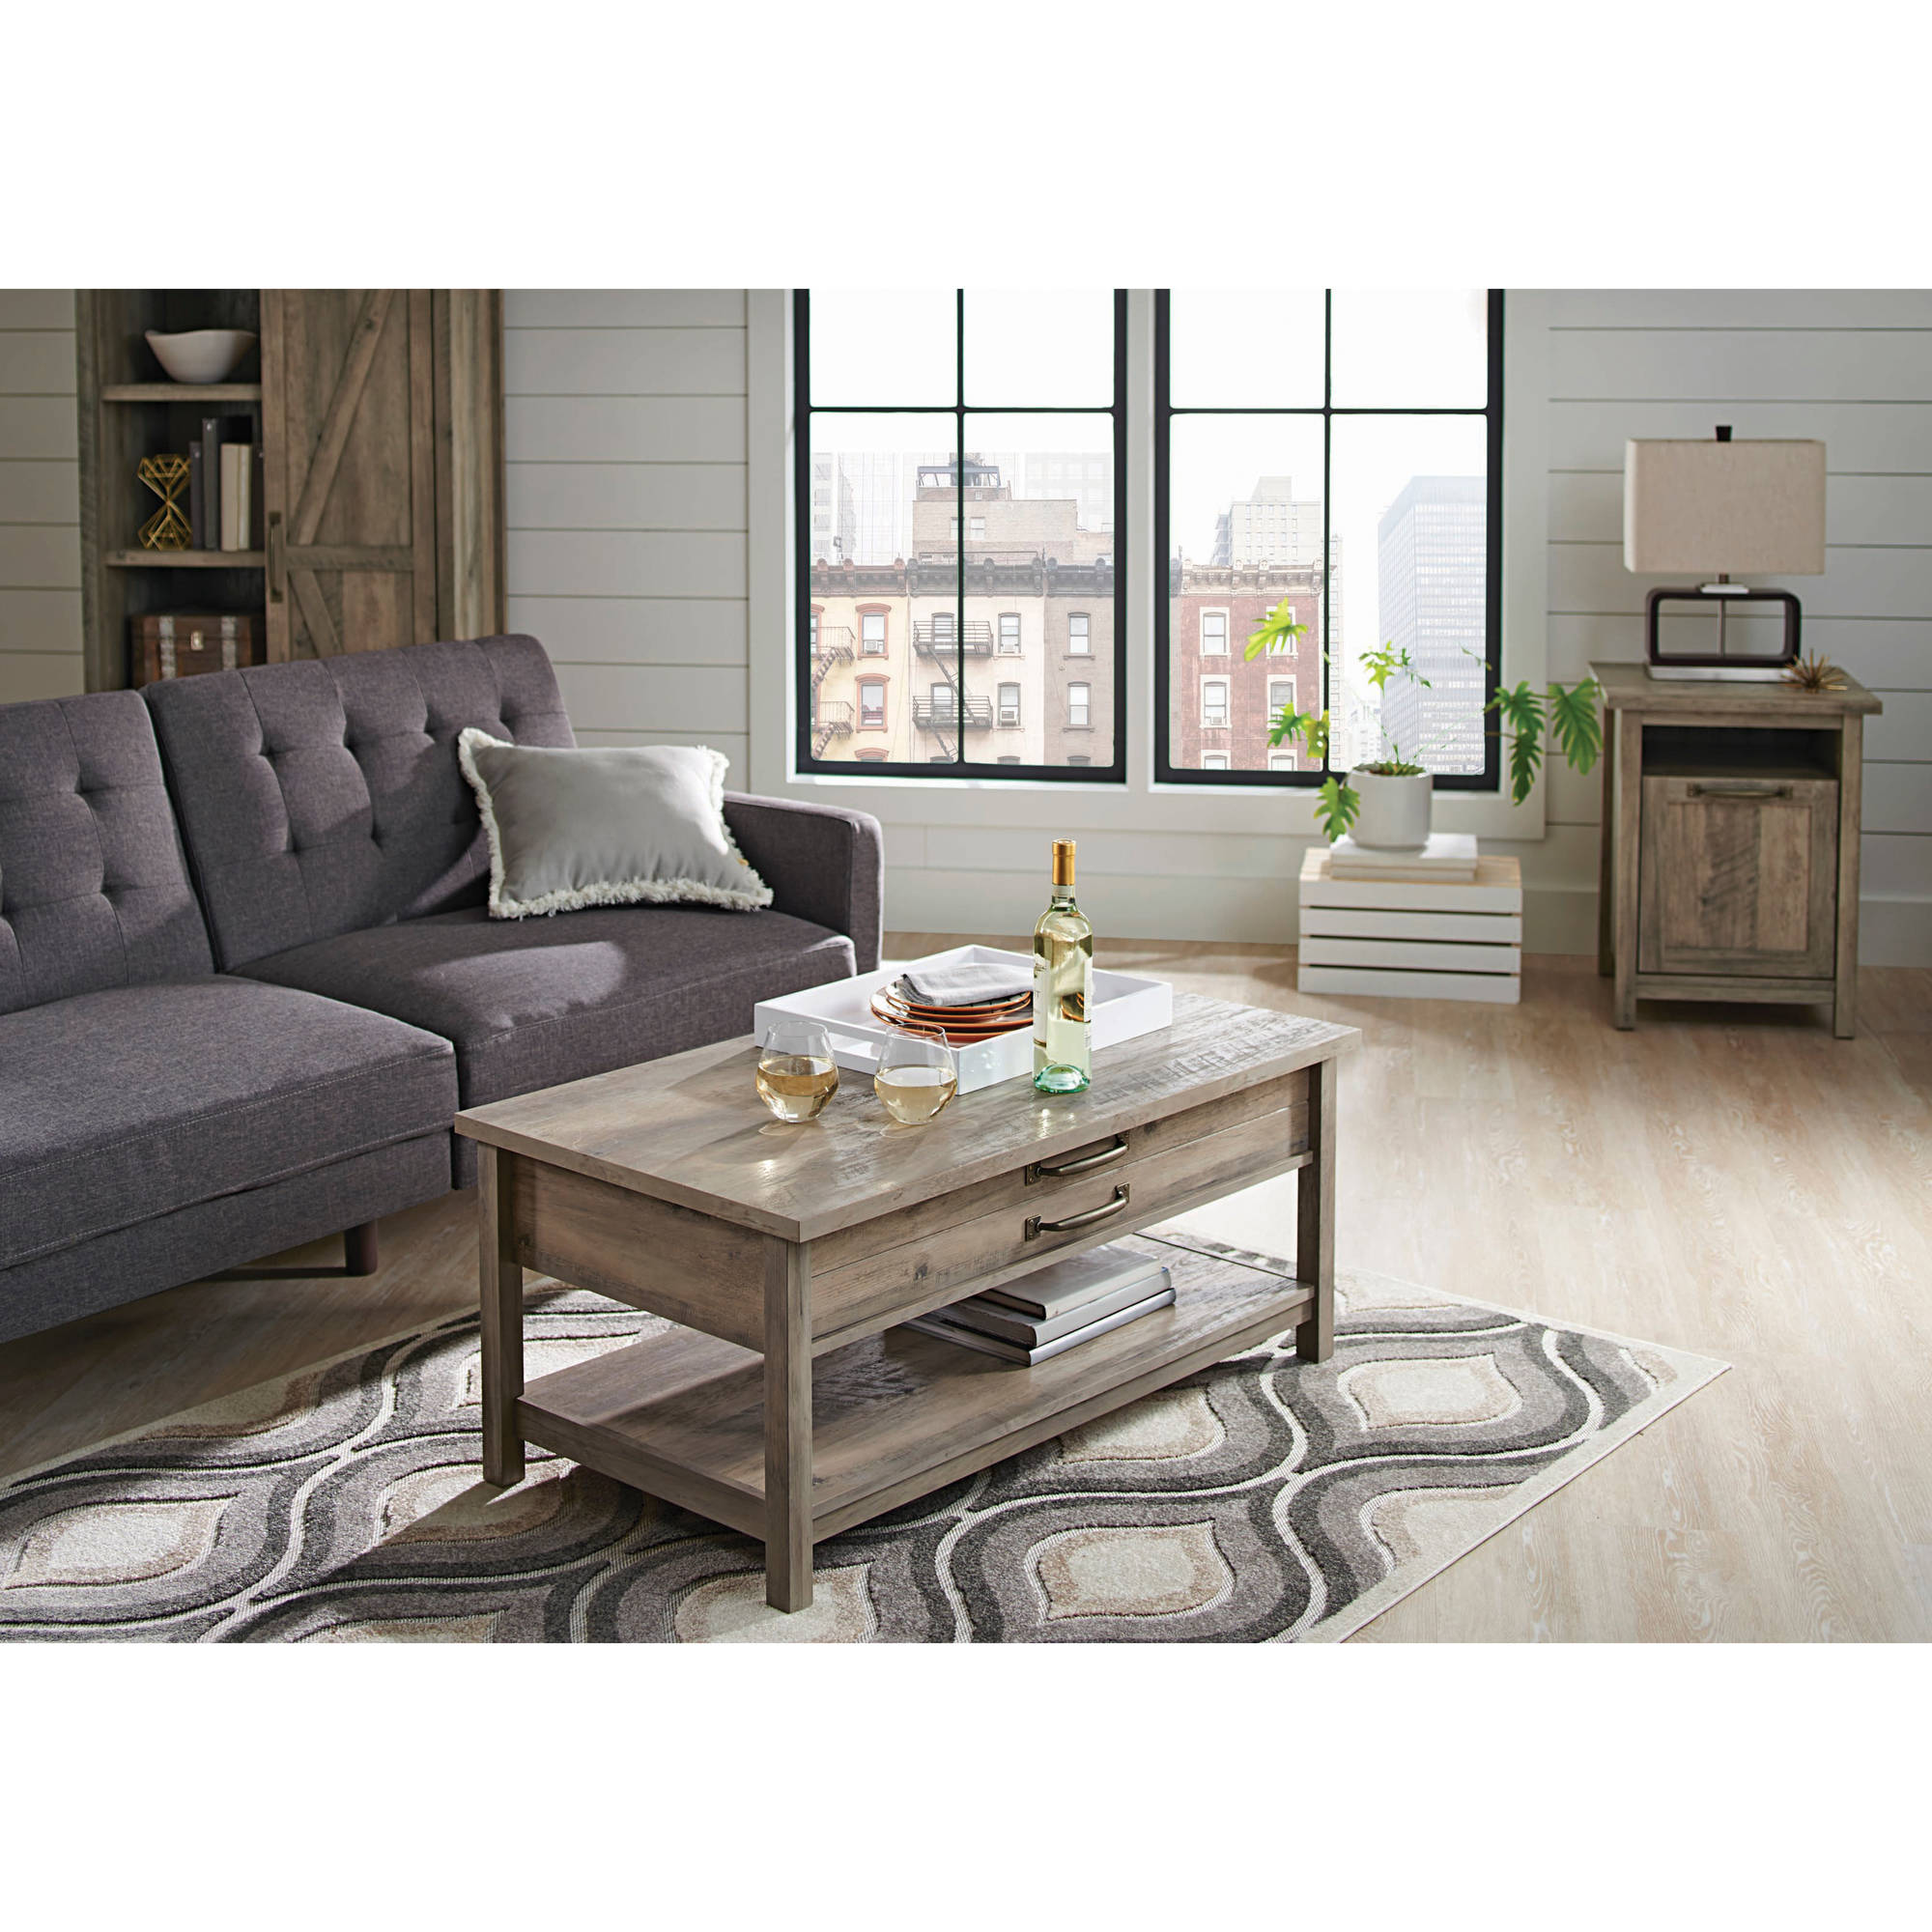 Better Homes and Gardens Modern Farmhouse Lift-Top Coffee Table, Rustic Gray Finish